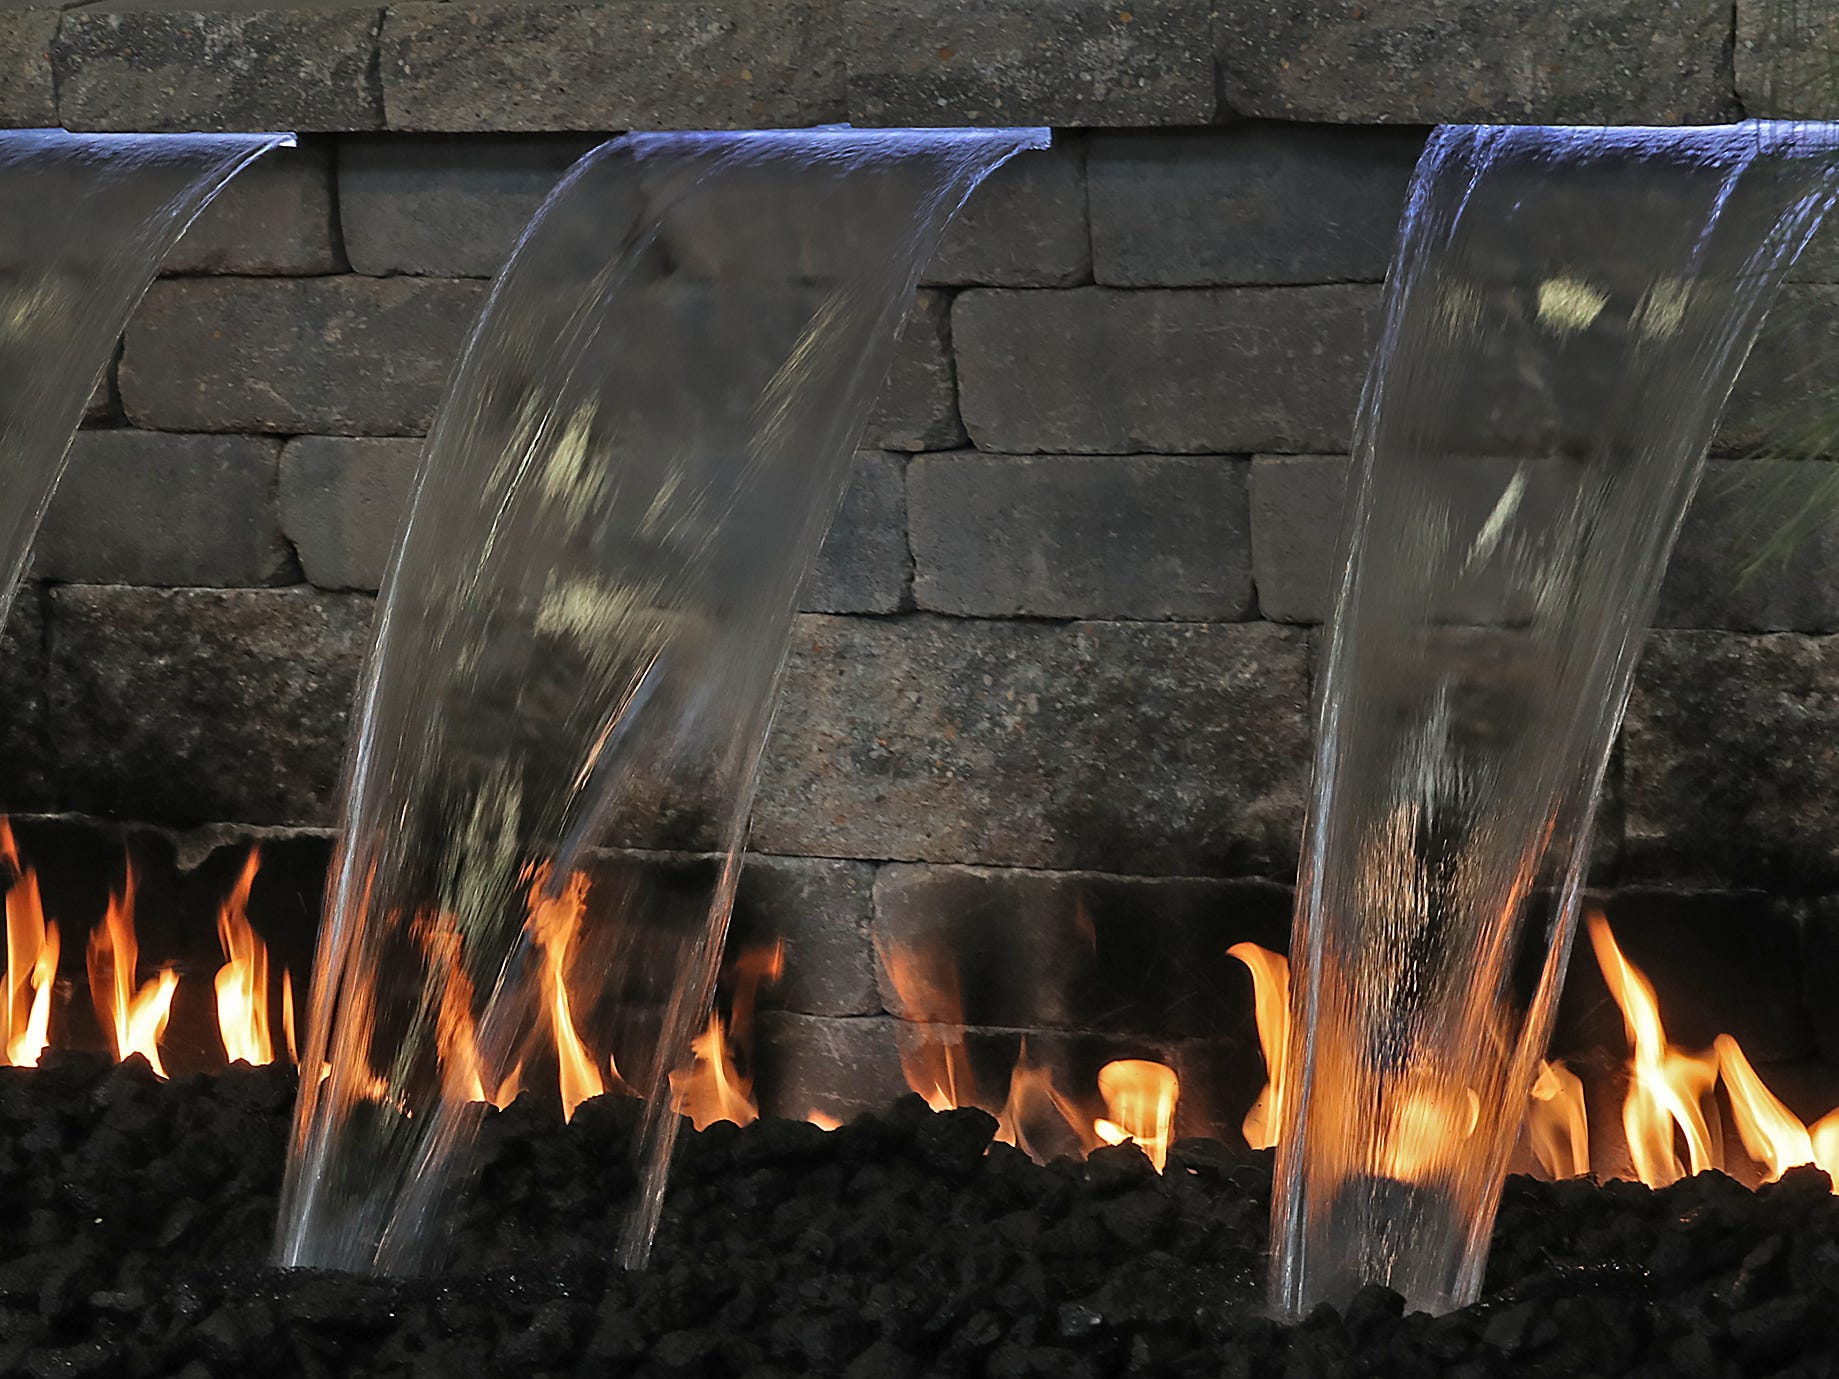 A fire pit from the Lakeshore Hardscapes display incorporates water and fire, at the Indiana Flower + Patio Show, at the Indiana State Fairgrounds, Sunday, March 10, 2019.